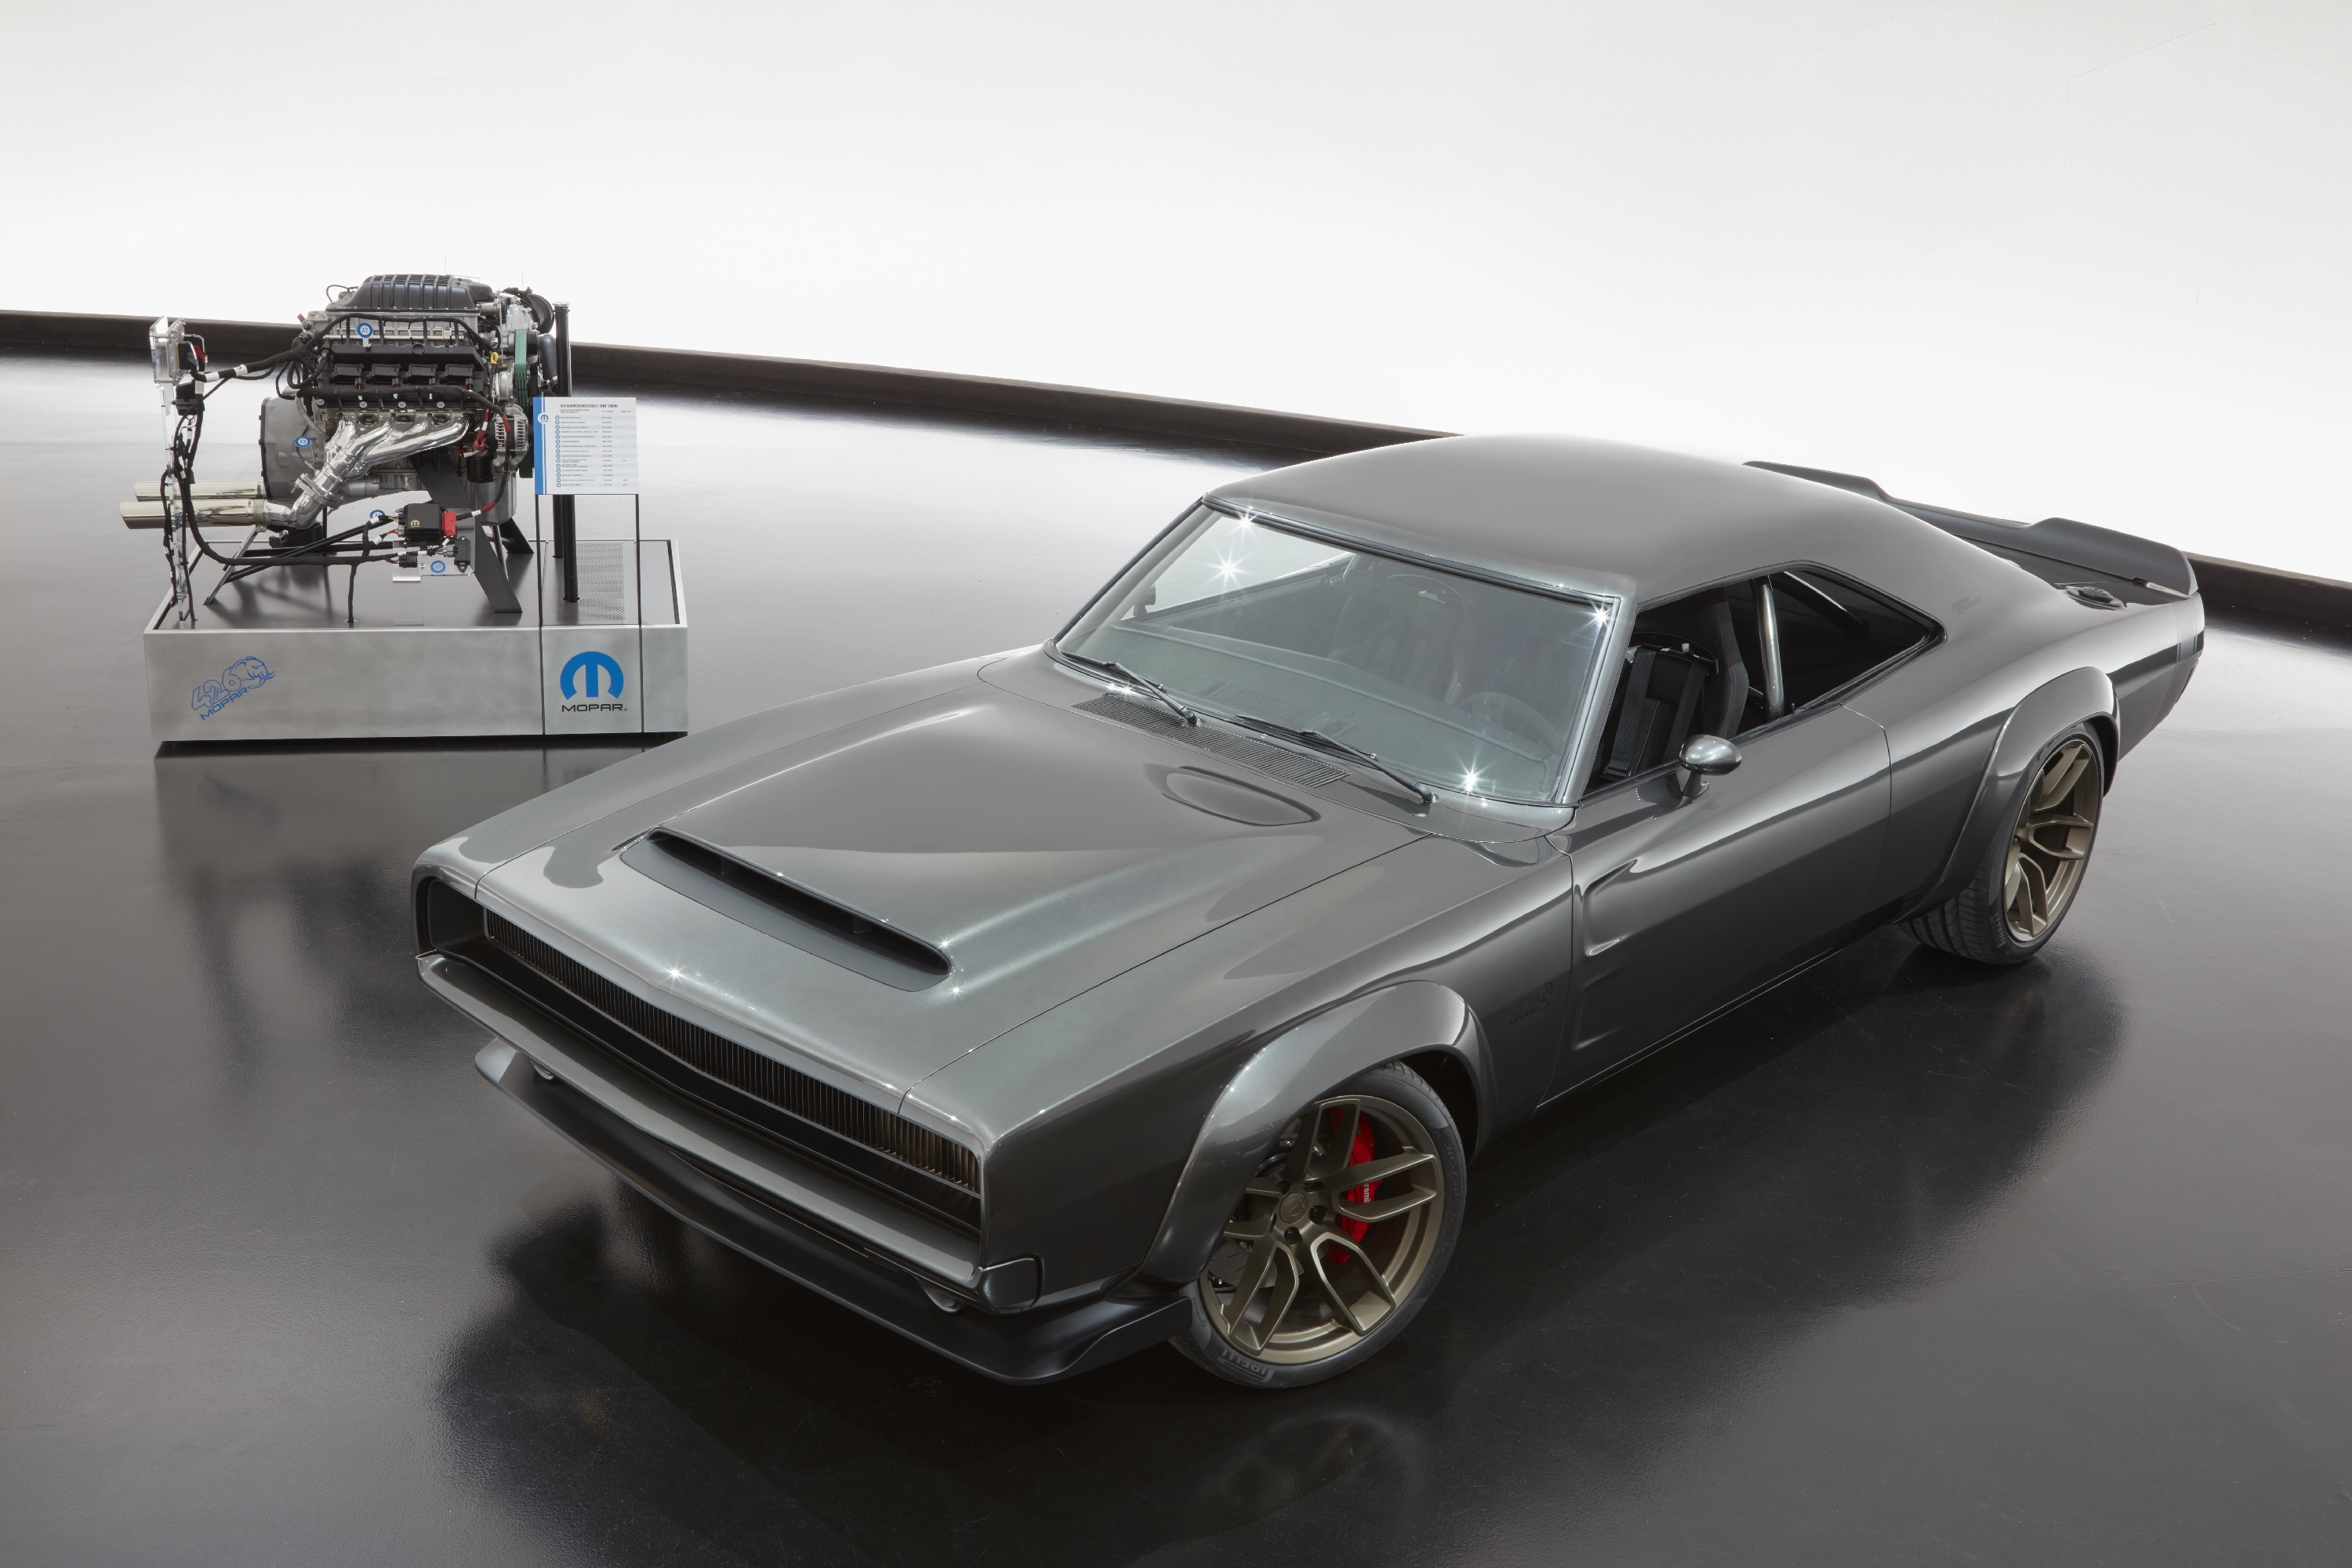 Hellephant Crate engine 1000 hp  and super charger car